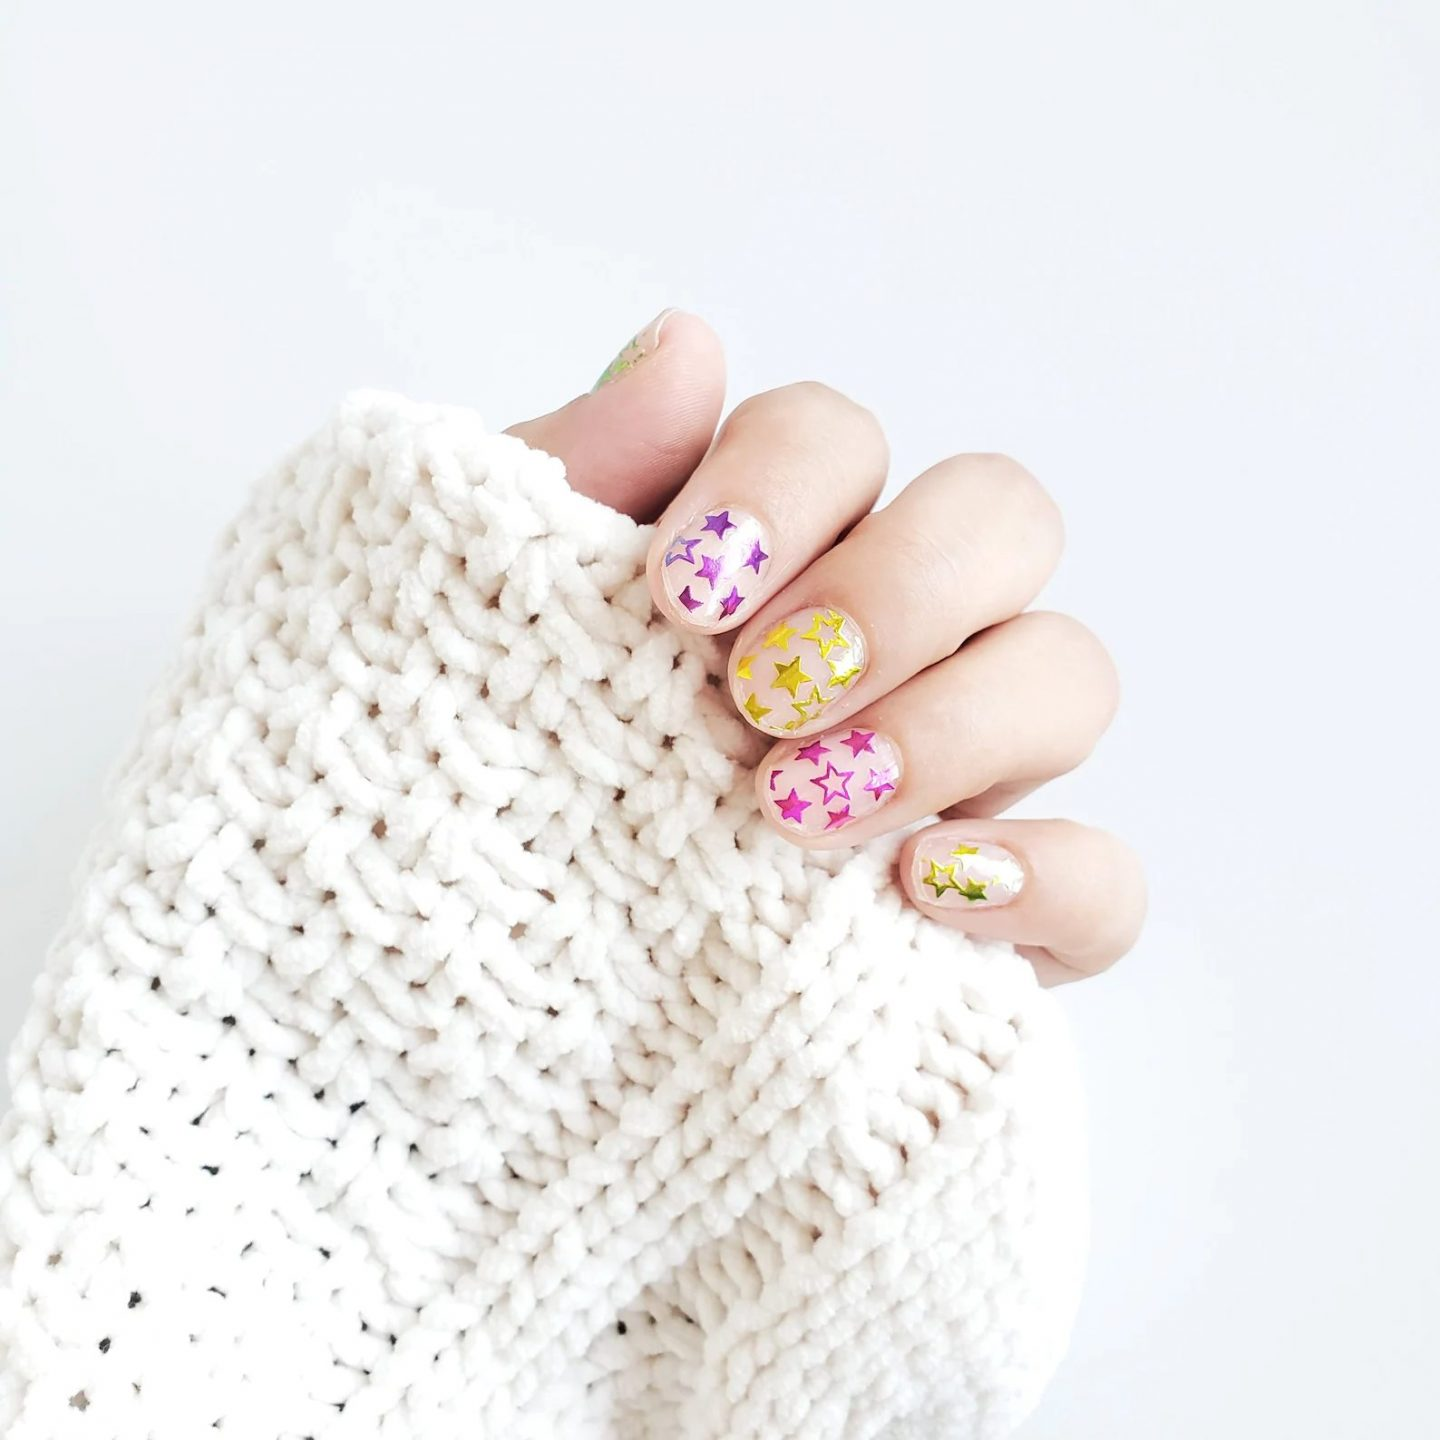 Cute New Years nails with colorful stars